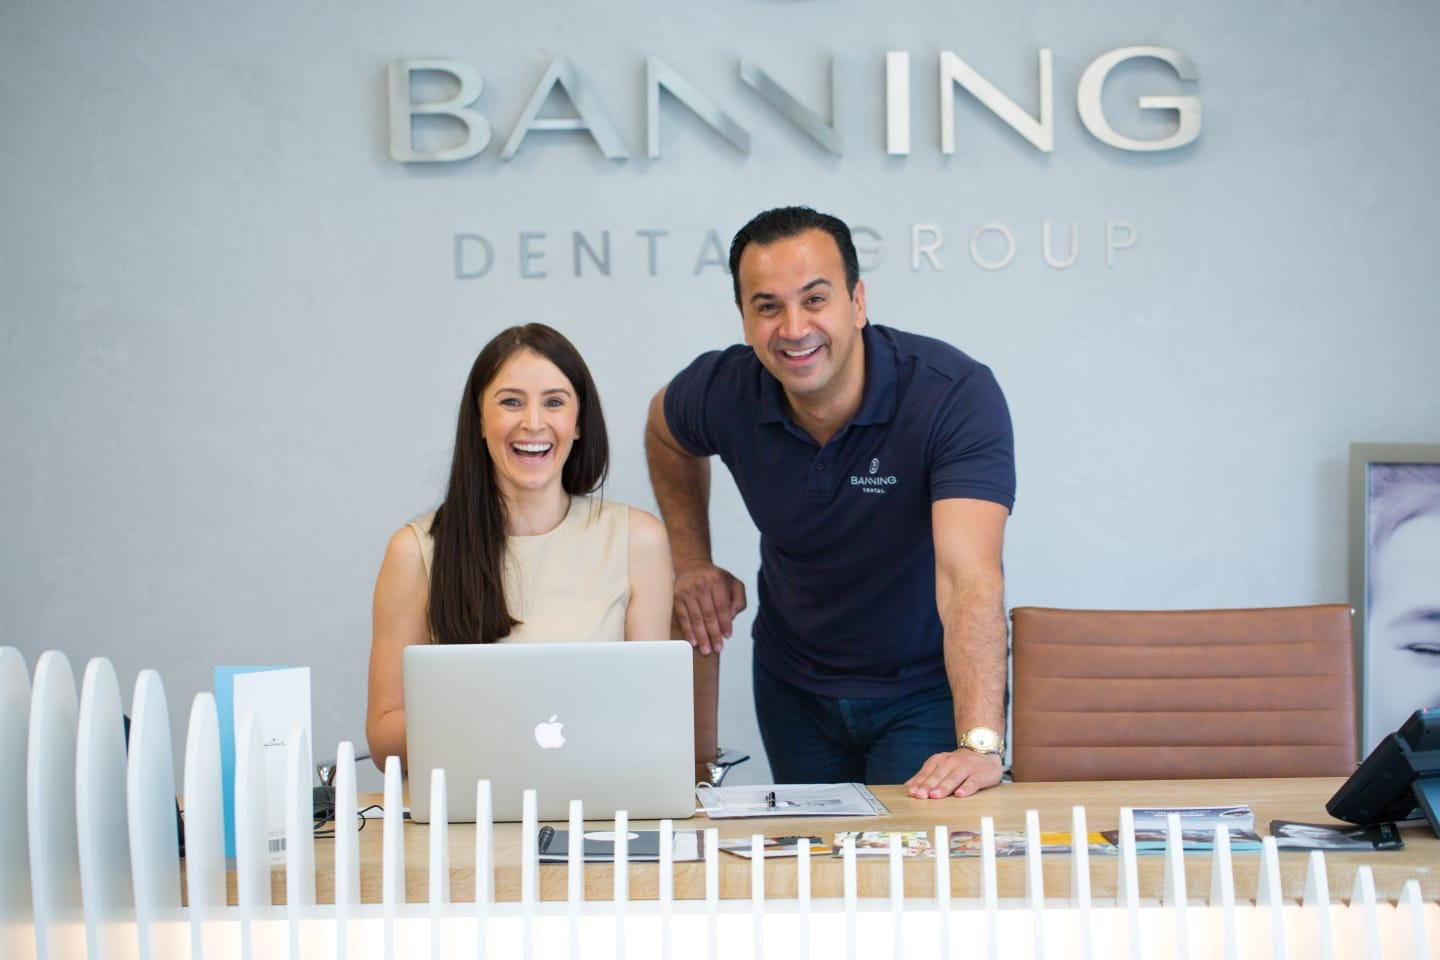 Team at Banning Dental Group smiling at the reception desk as they enjoy their new commercial interior design & fit out